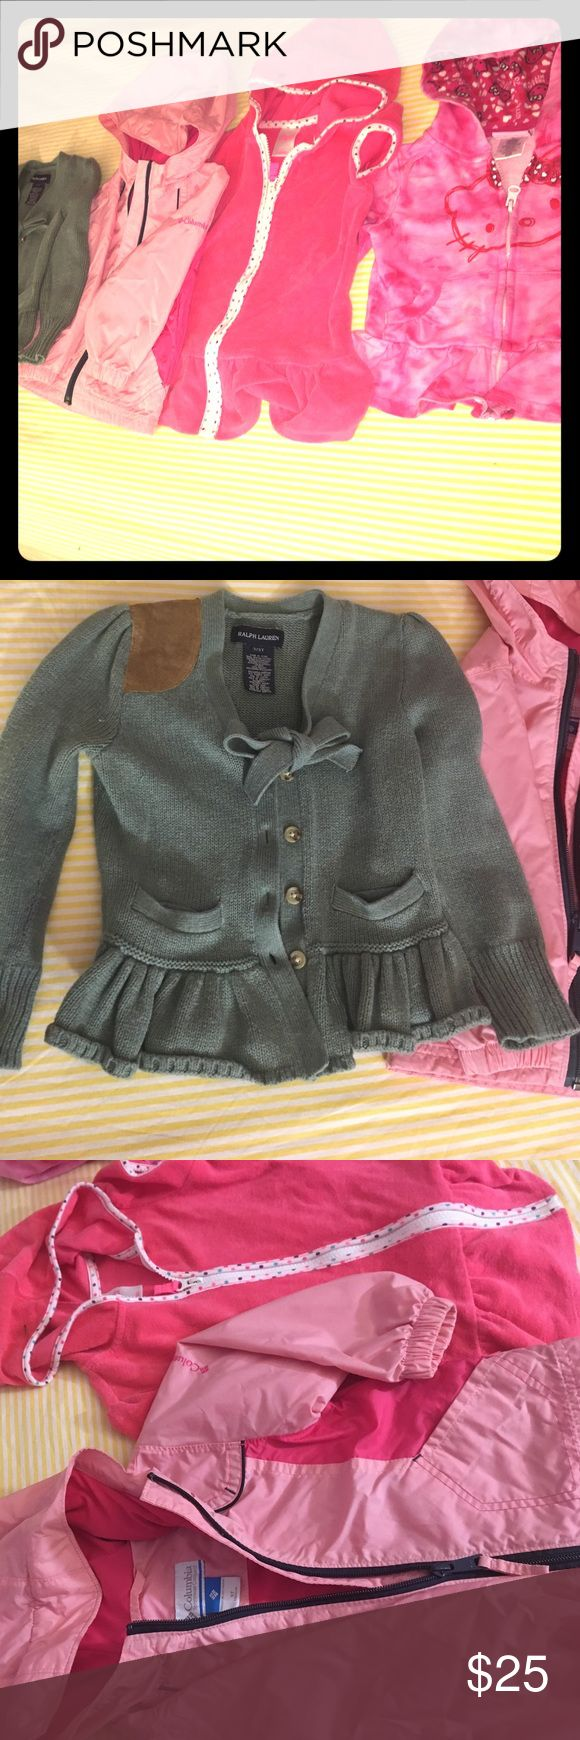 3t, jacket/bundle. I-Ralph Lauren jacket, +3 more. Ralph Lauren 3T forest green sweater jacket, 1-pink Hello kitty, zip front jacket, 1-Colombia light and hot pink wind breaker zip front jacket, Corcoran 3t hot pink beach cover up. Bundle cost for all four, all 3 t. Ralph Lauren Shirts & Tops Sweaters